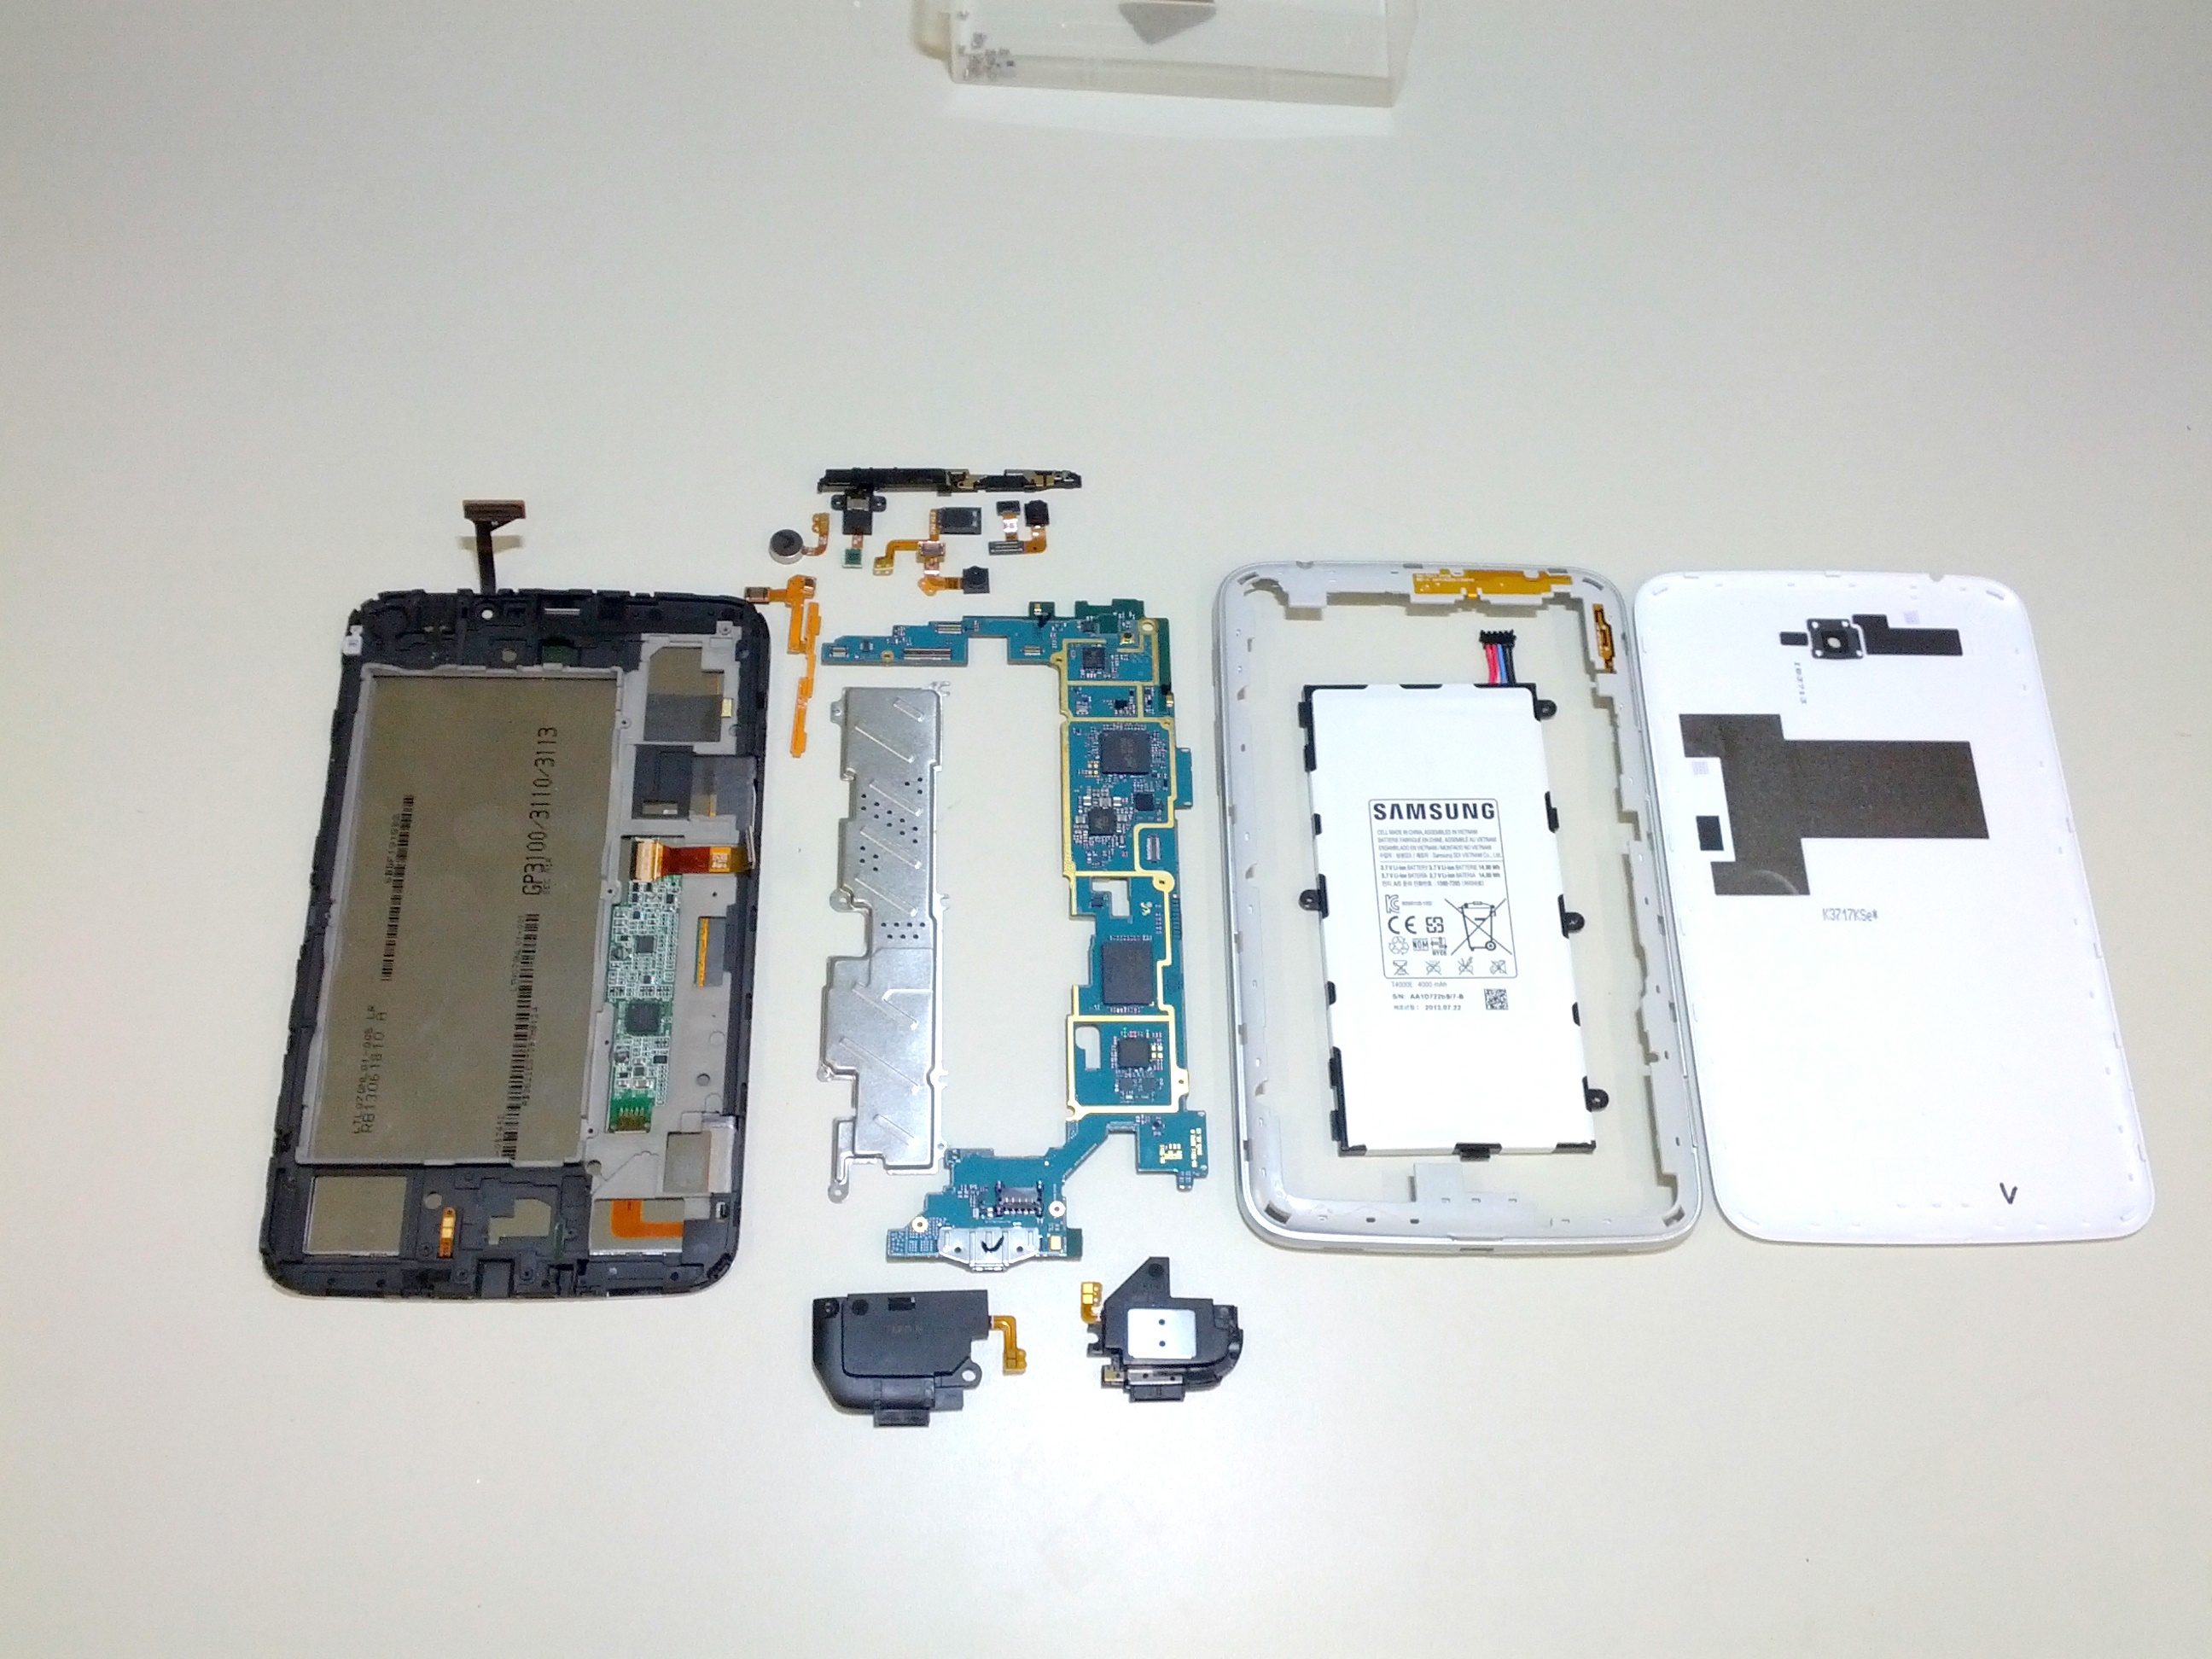 How To Fix If Dell Laptop Not besides Xbox 360 Slim Power Supply Wiring Diagram furthermore Bouw Je Eigen Pc  2011 Editie Stap 9 Connectors Aansluiten as well 3b3 additionally 803308 Ls400 Ignition Coil Upgrades. on motherboard wiring diagram